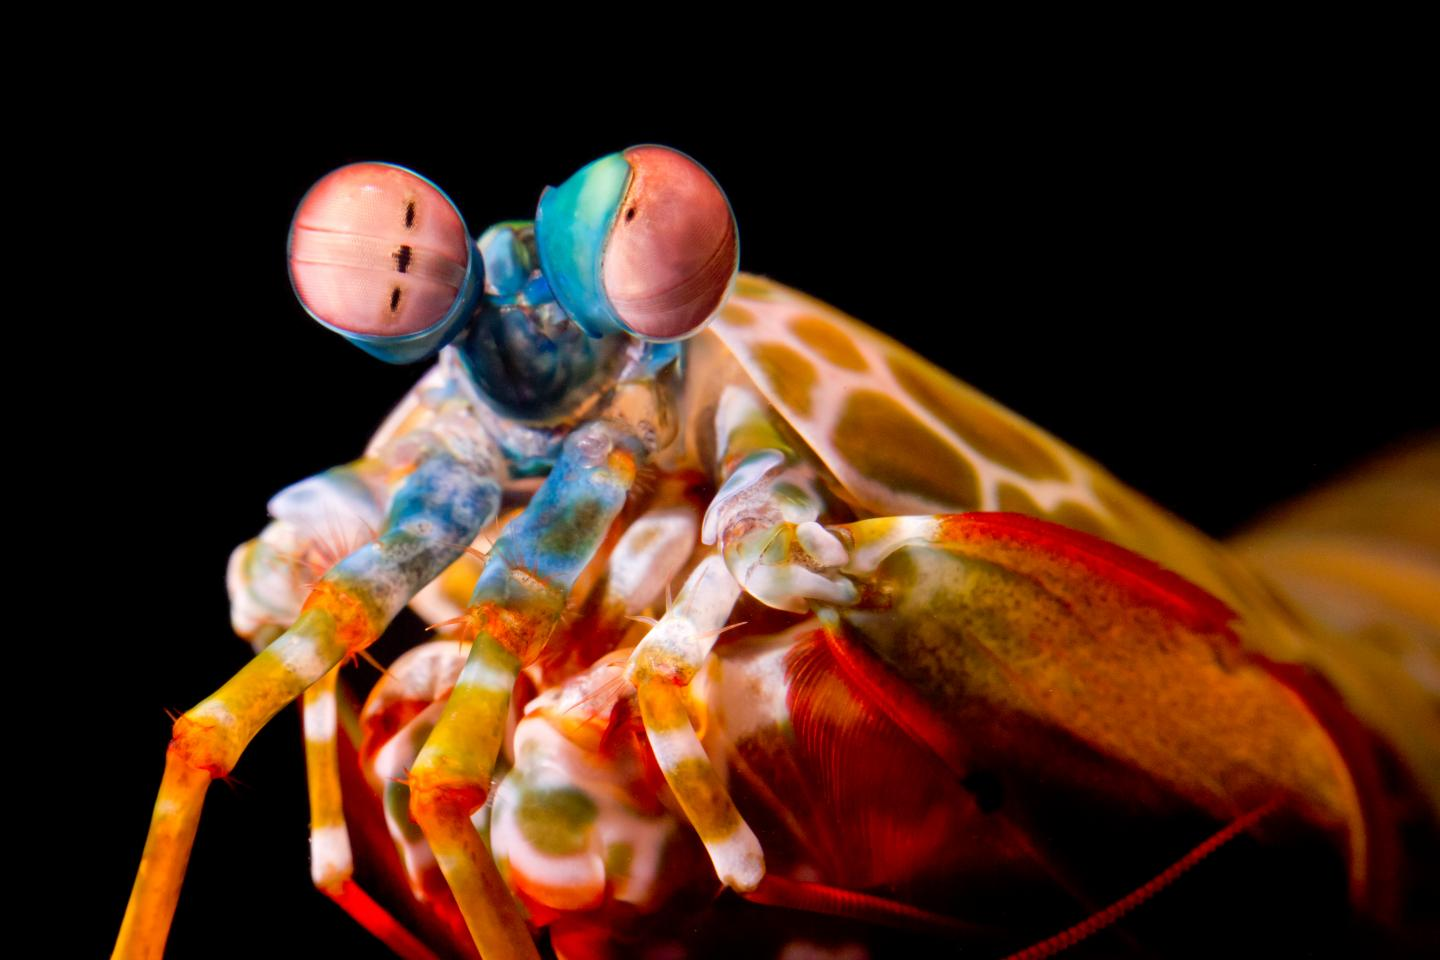 Mantis shrimp eyes fascinating, via Michael Bok, University of Lund